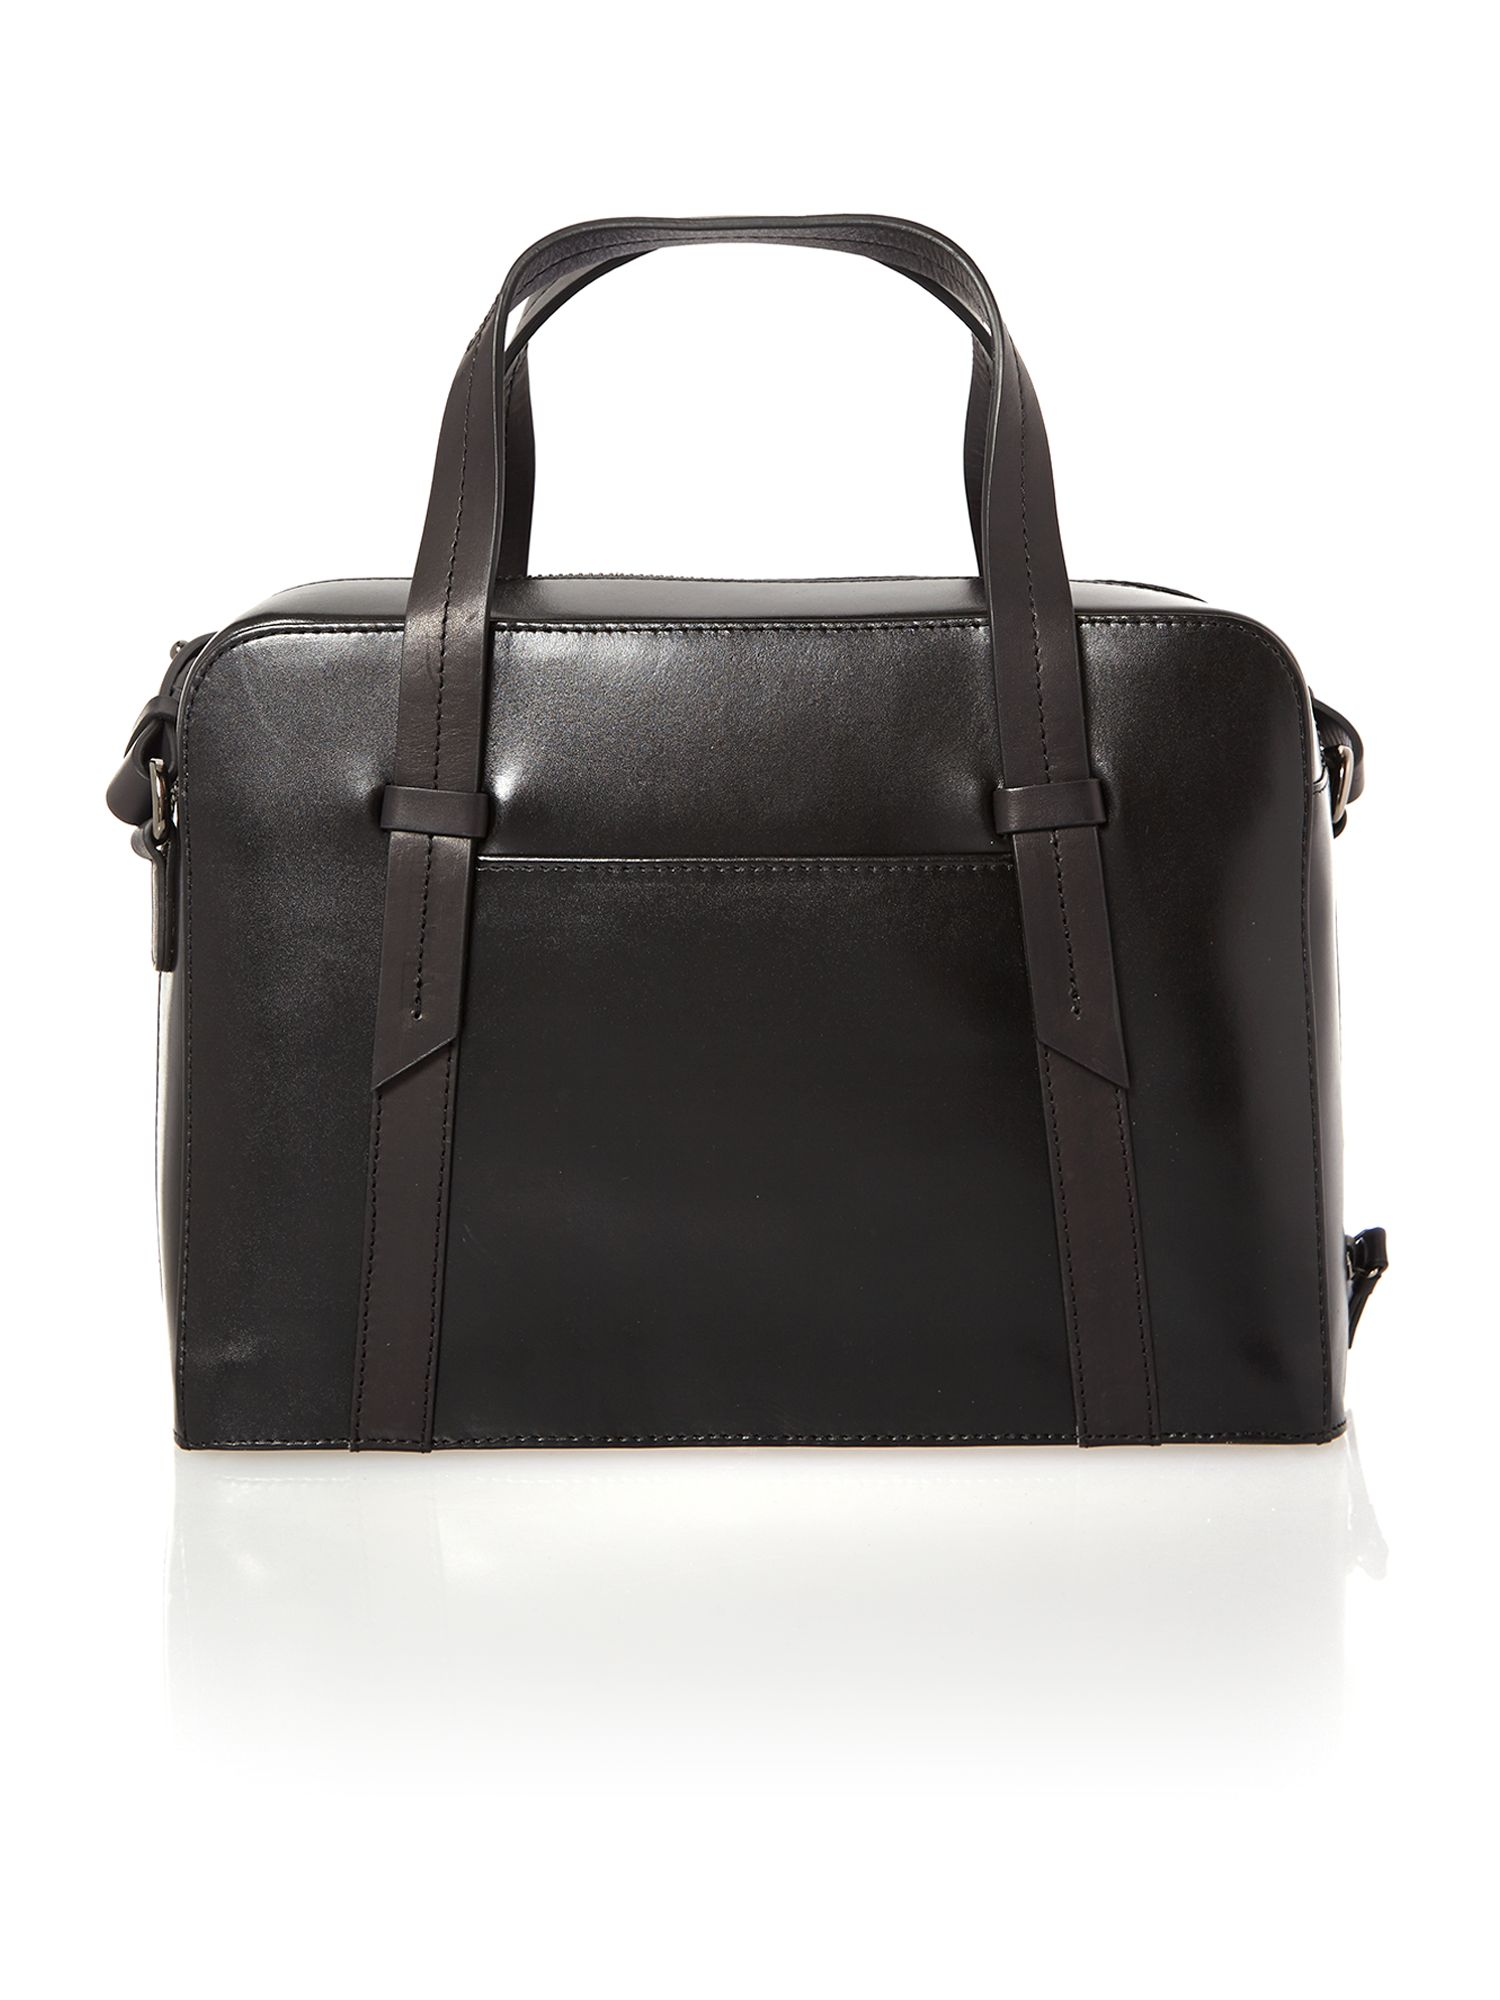 Malton black medium leather crossbody tote bag